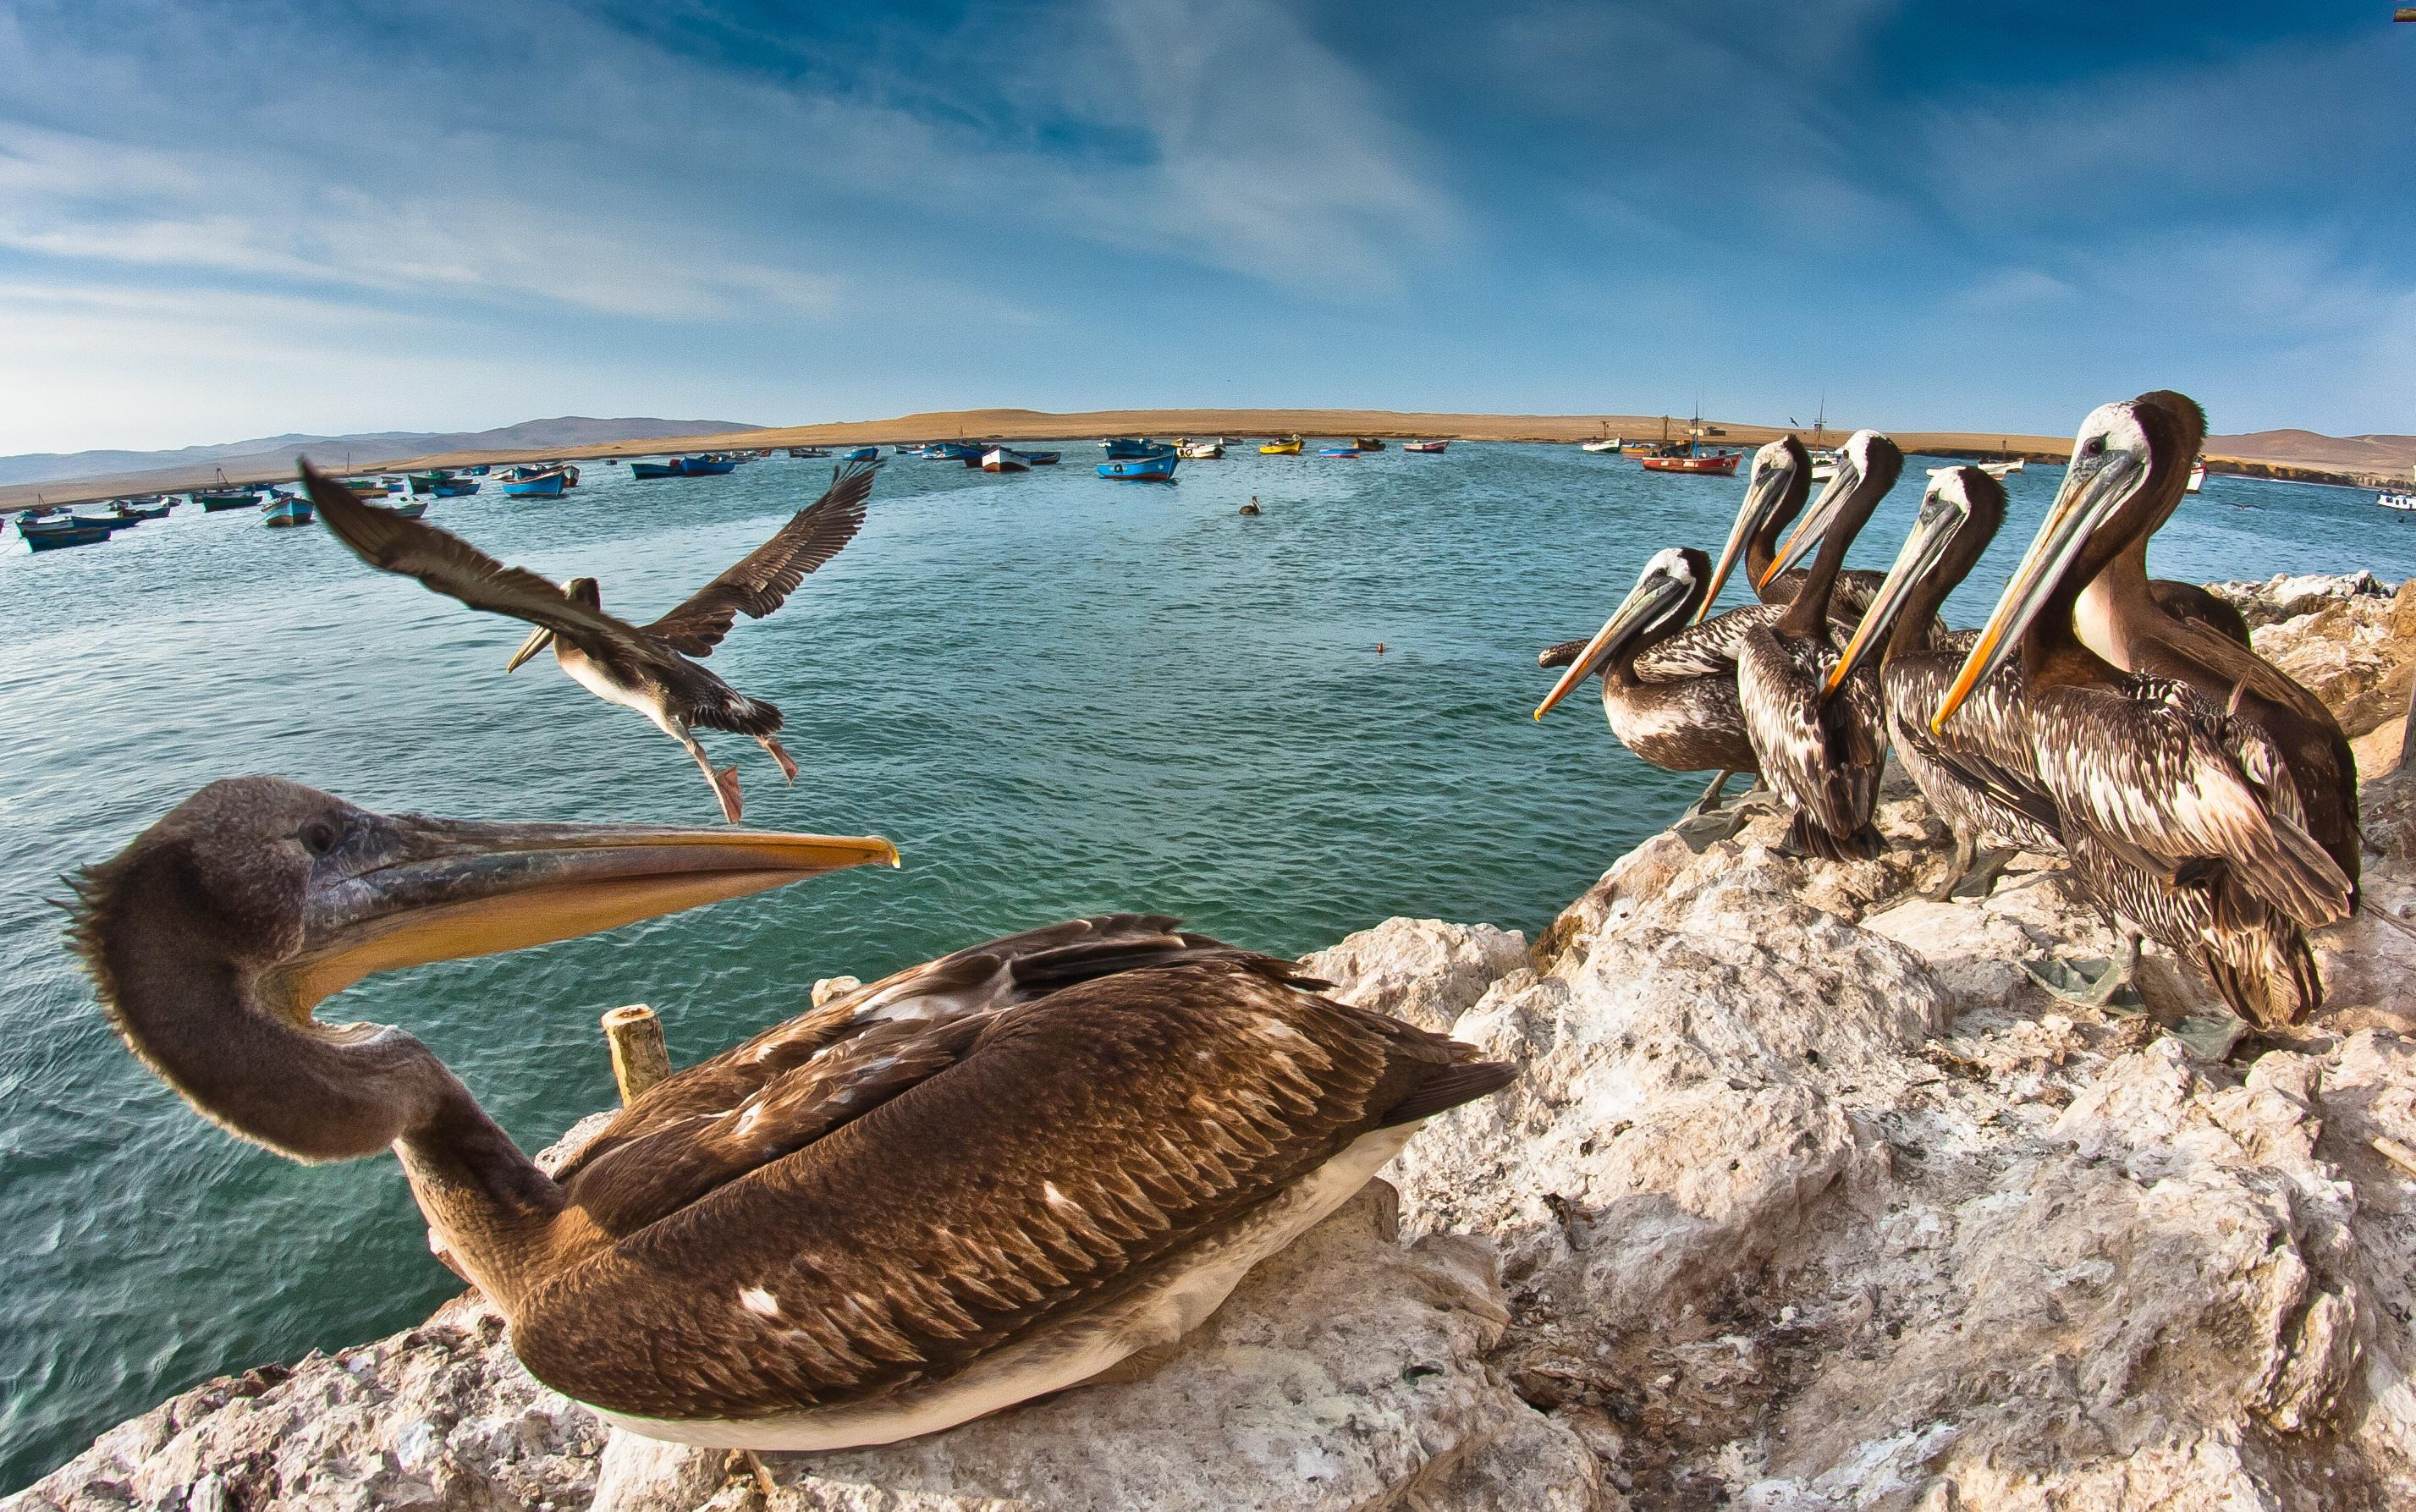 How to Spend 1 Day in Paracas